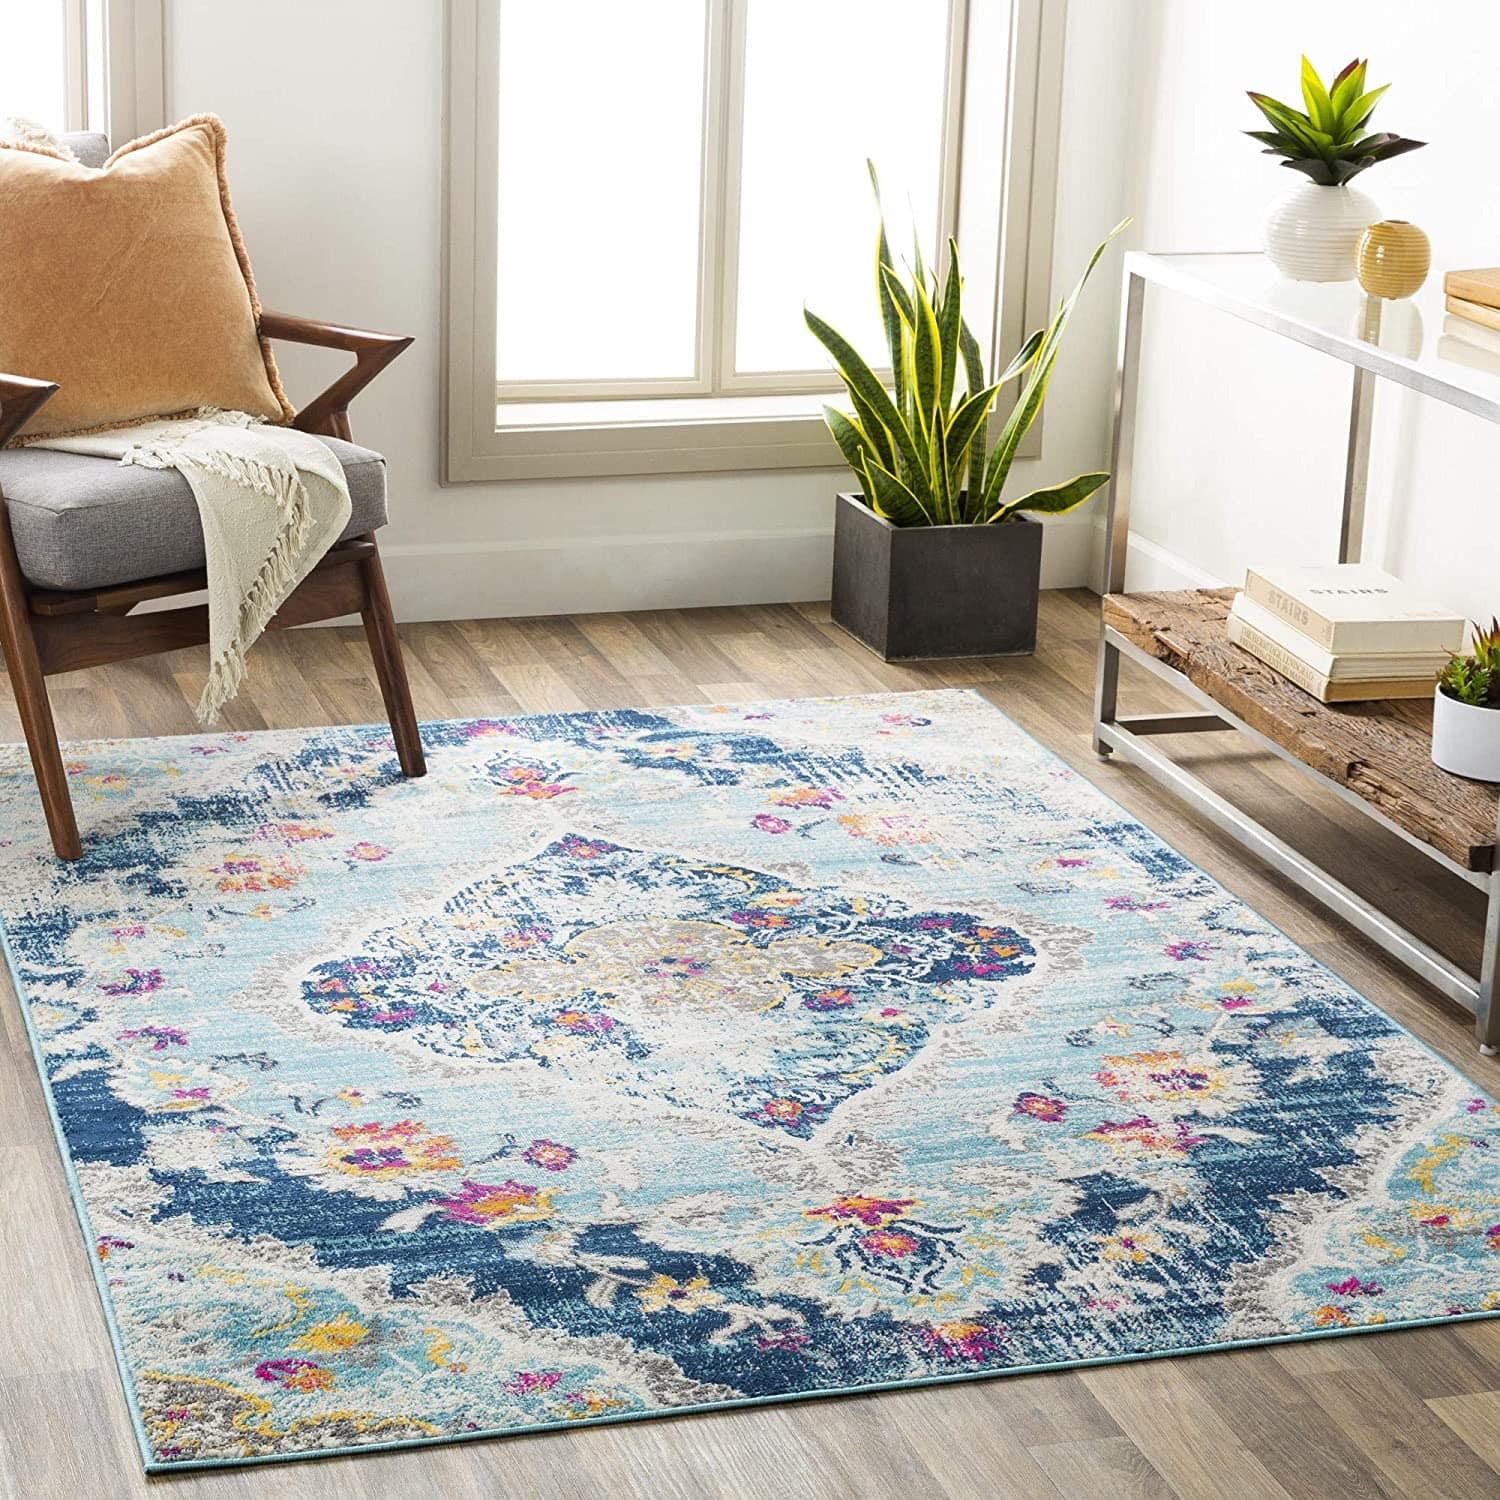 """5'3"""" x 7'1"""" Artistic Weavers Antioch Area Rug (Teal) $44.85 + Free Shipping"""